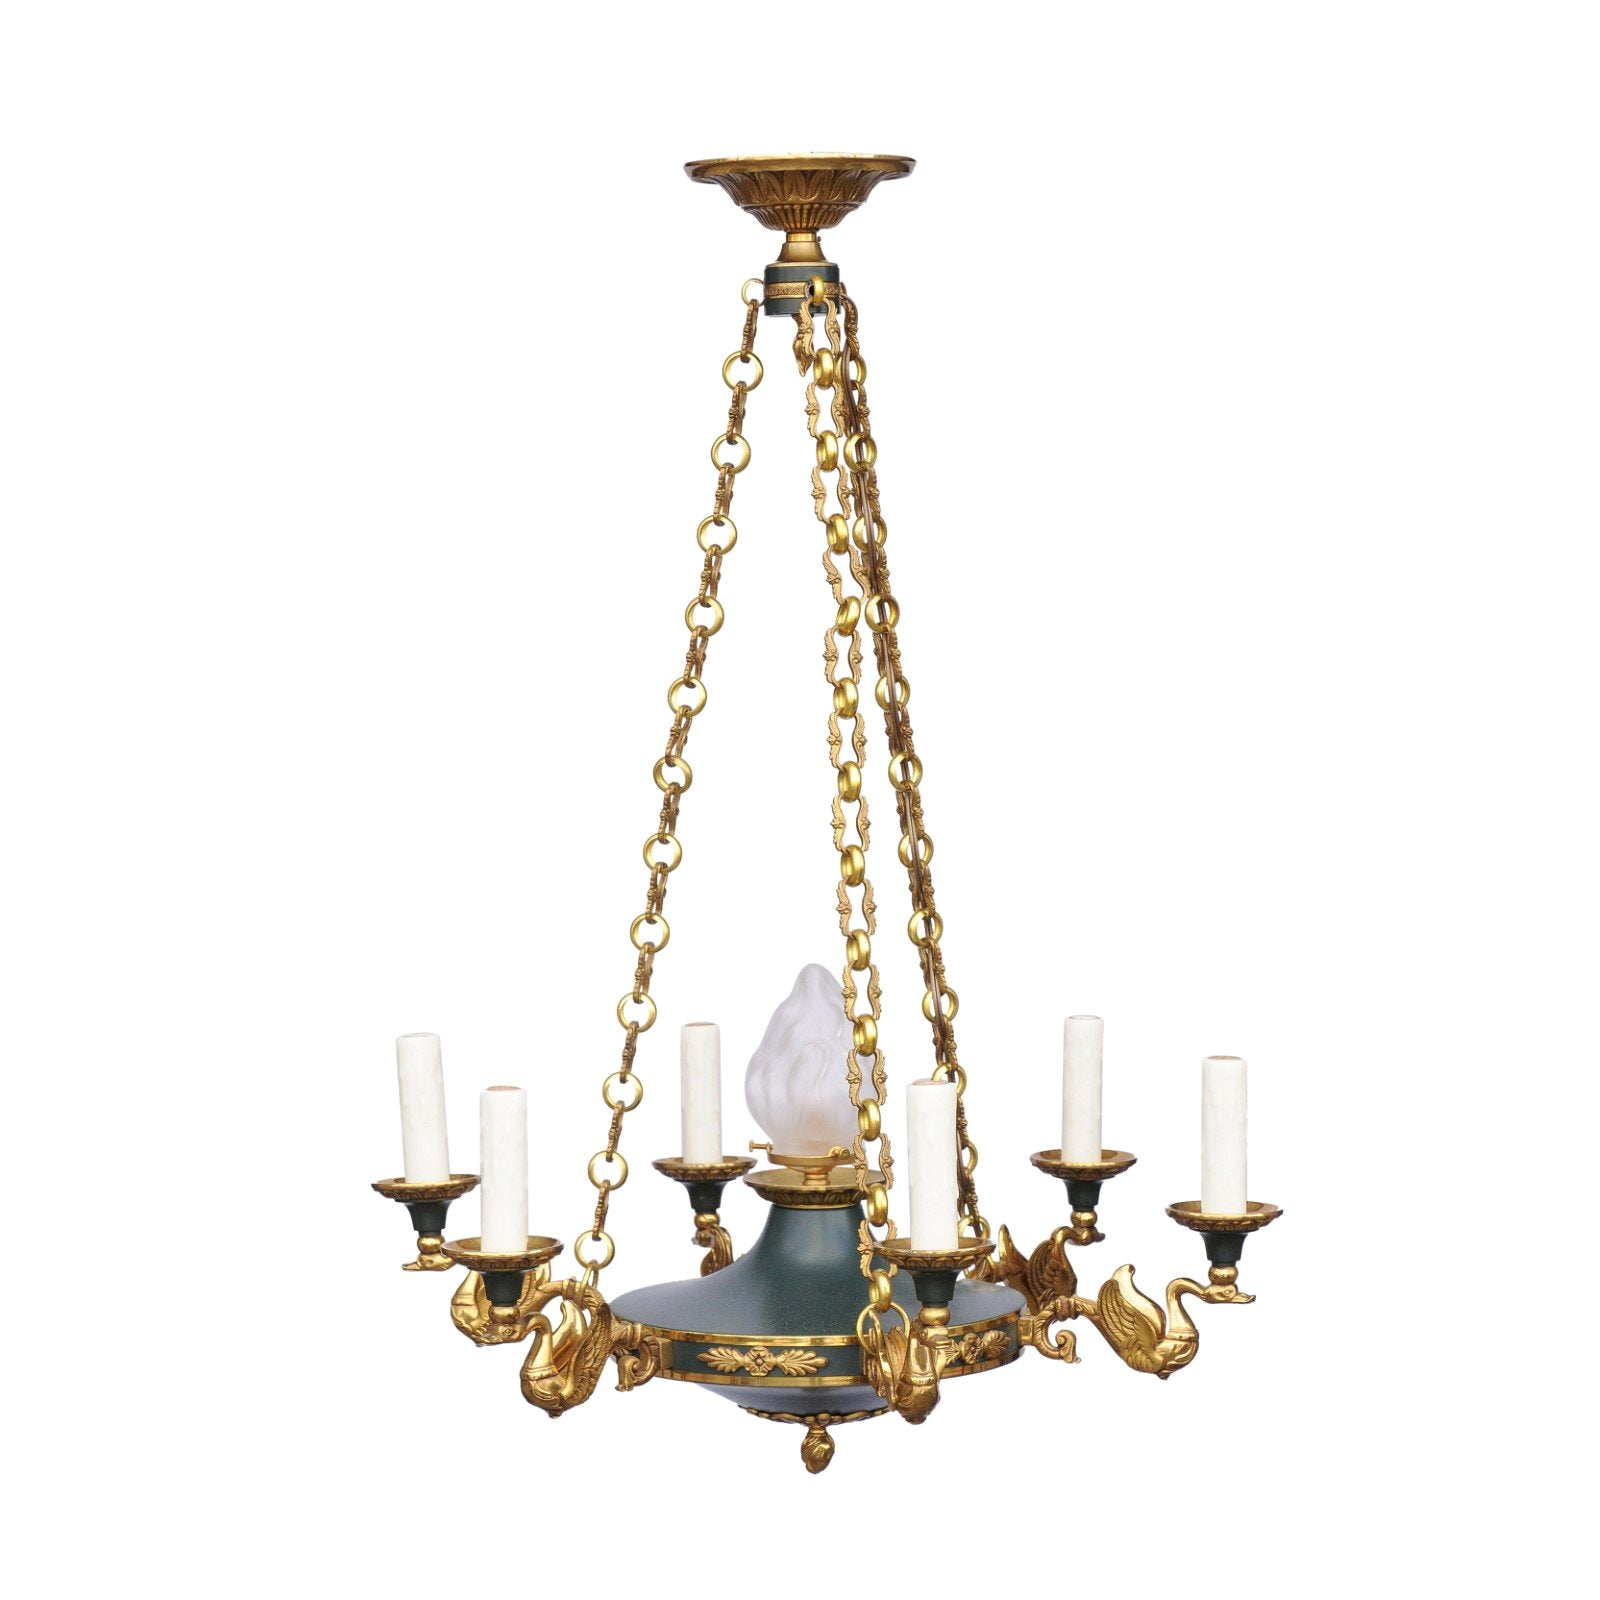 French Six-Light Empire Style Bronze Chandelier with Swan Motifs, circa 1920